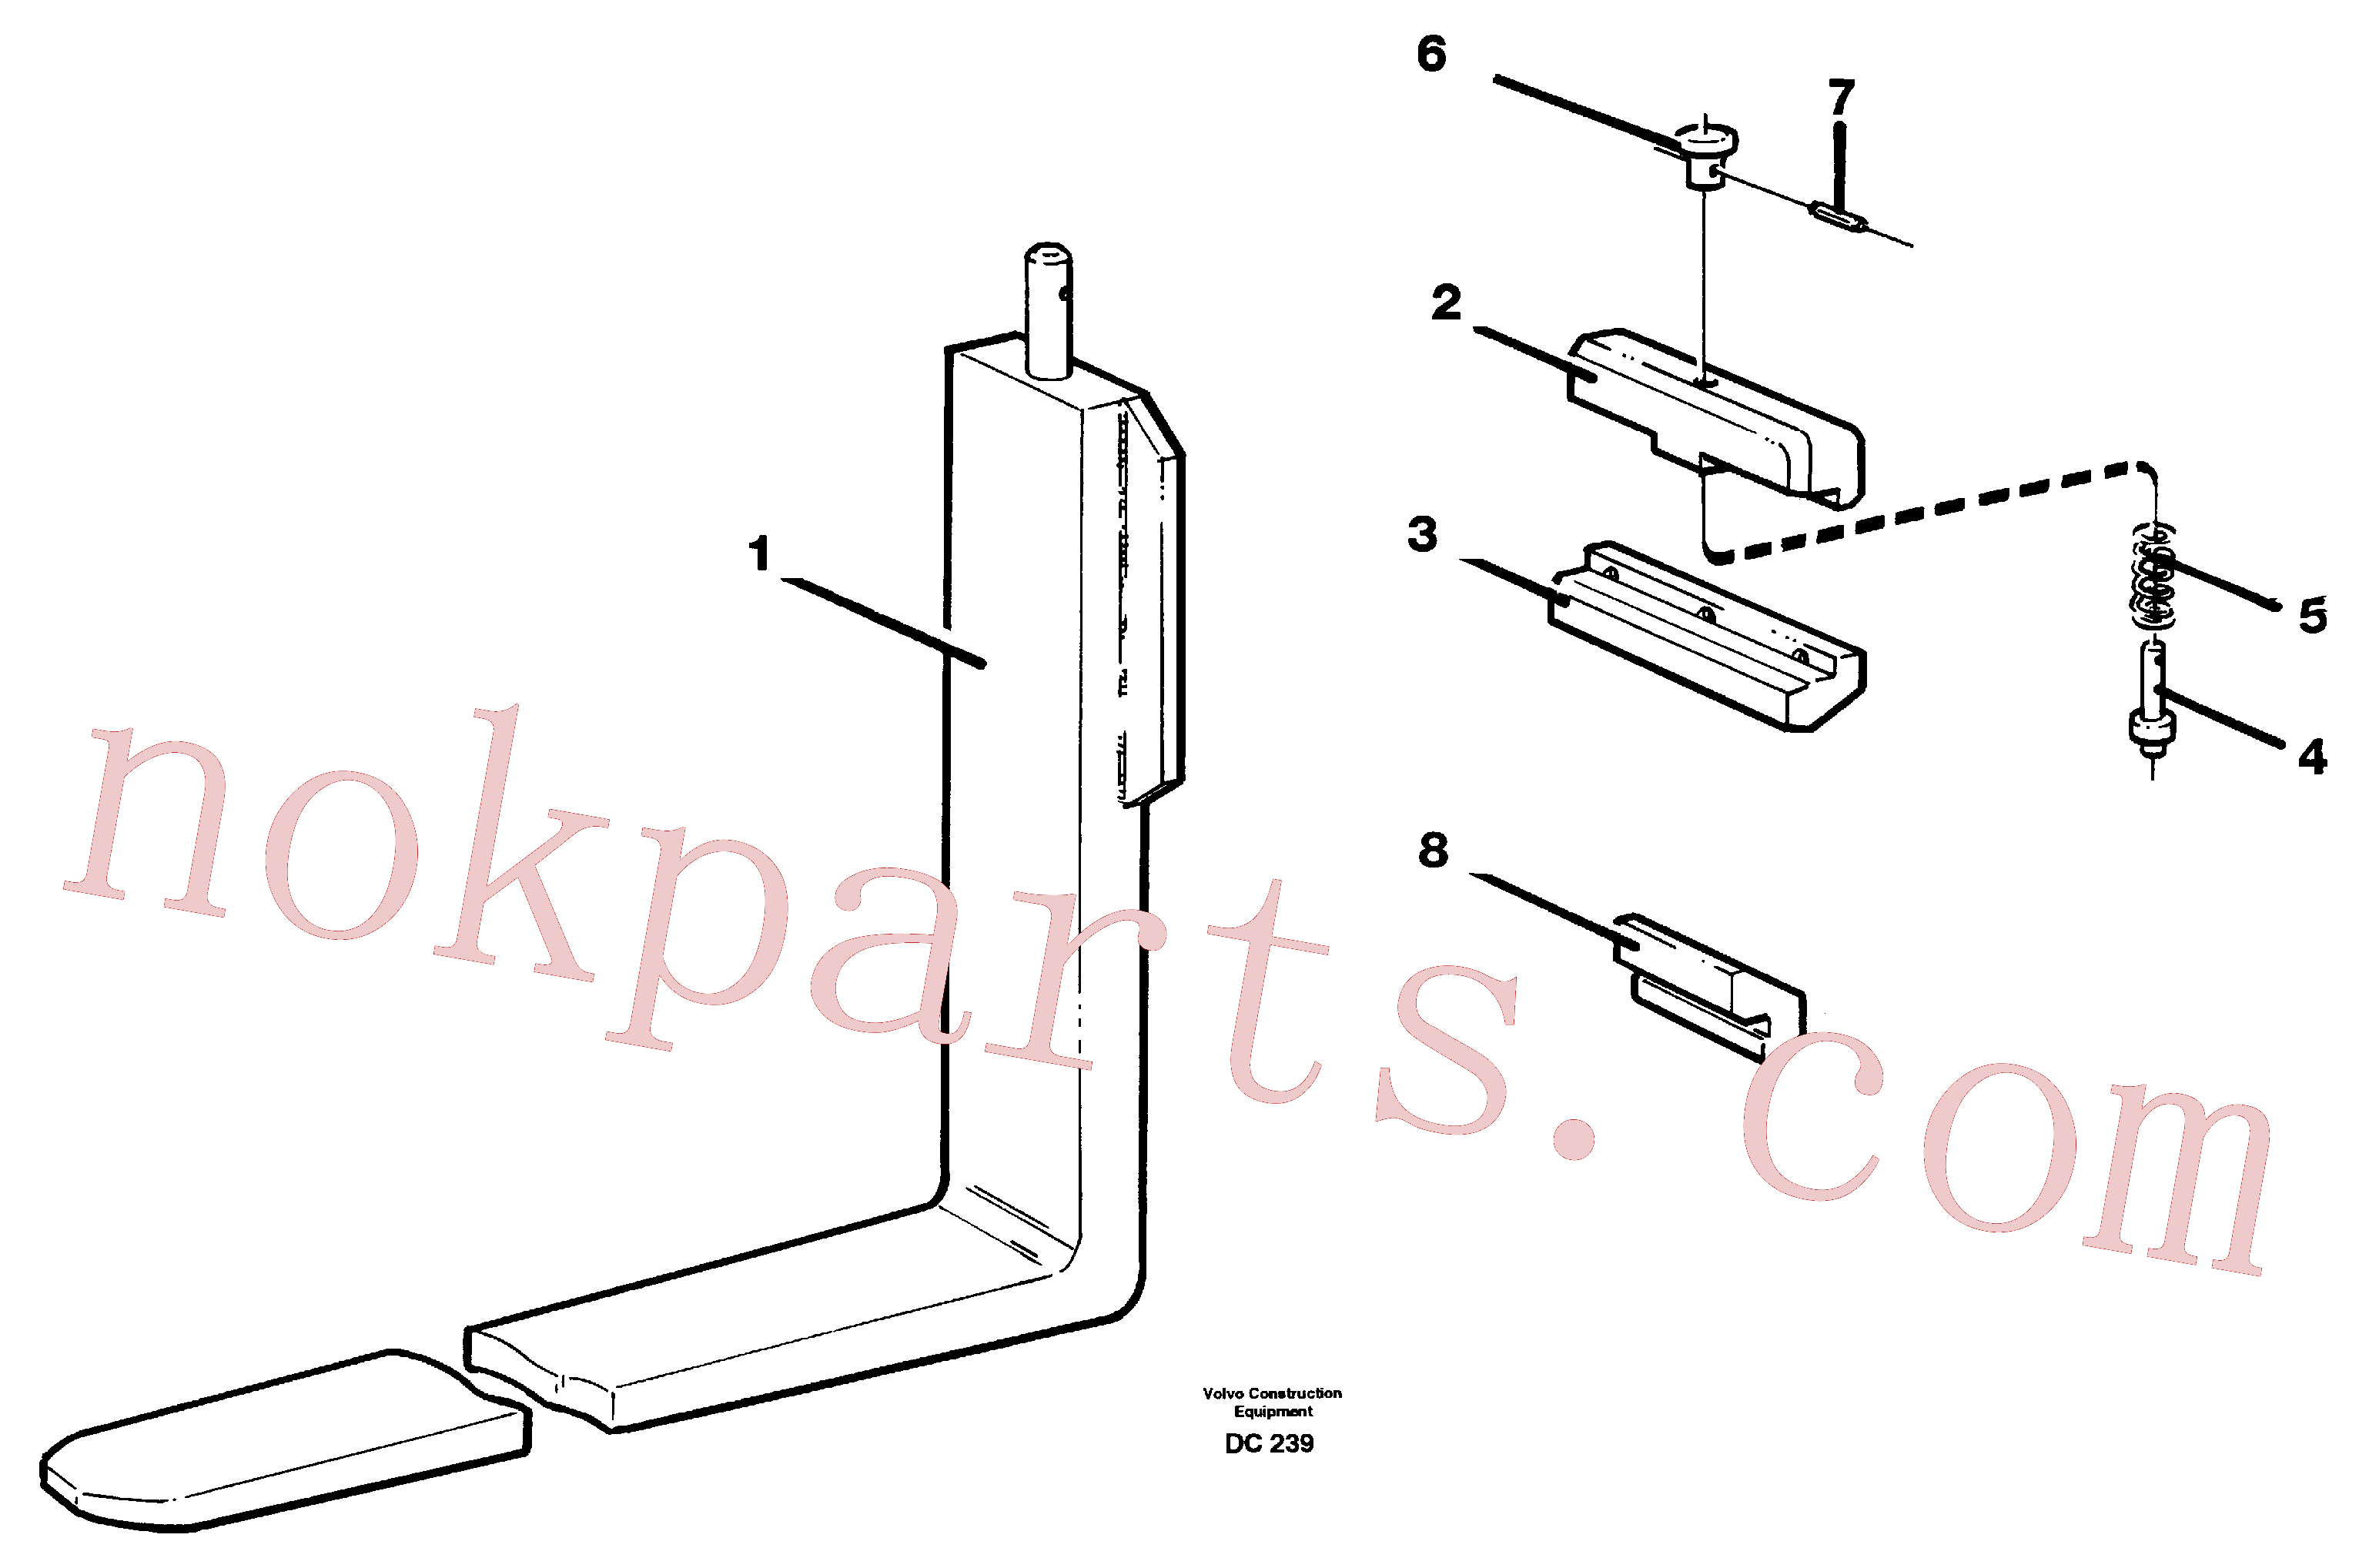 VOE11111317 for Volvo Fork tines(DC239 assembly)